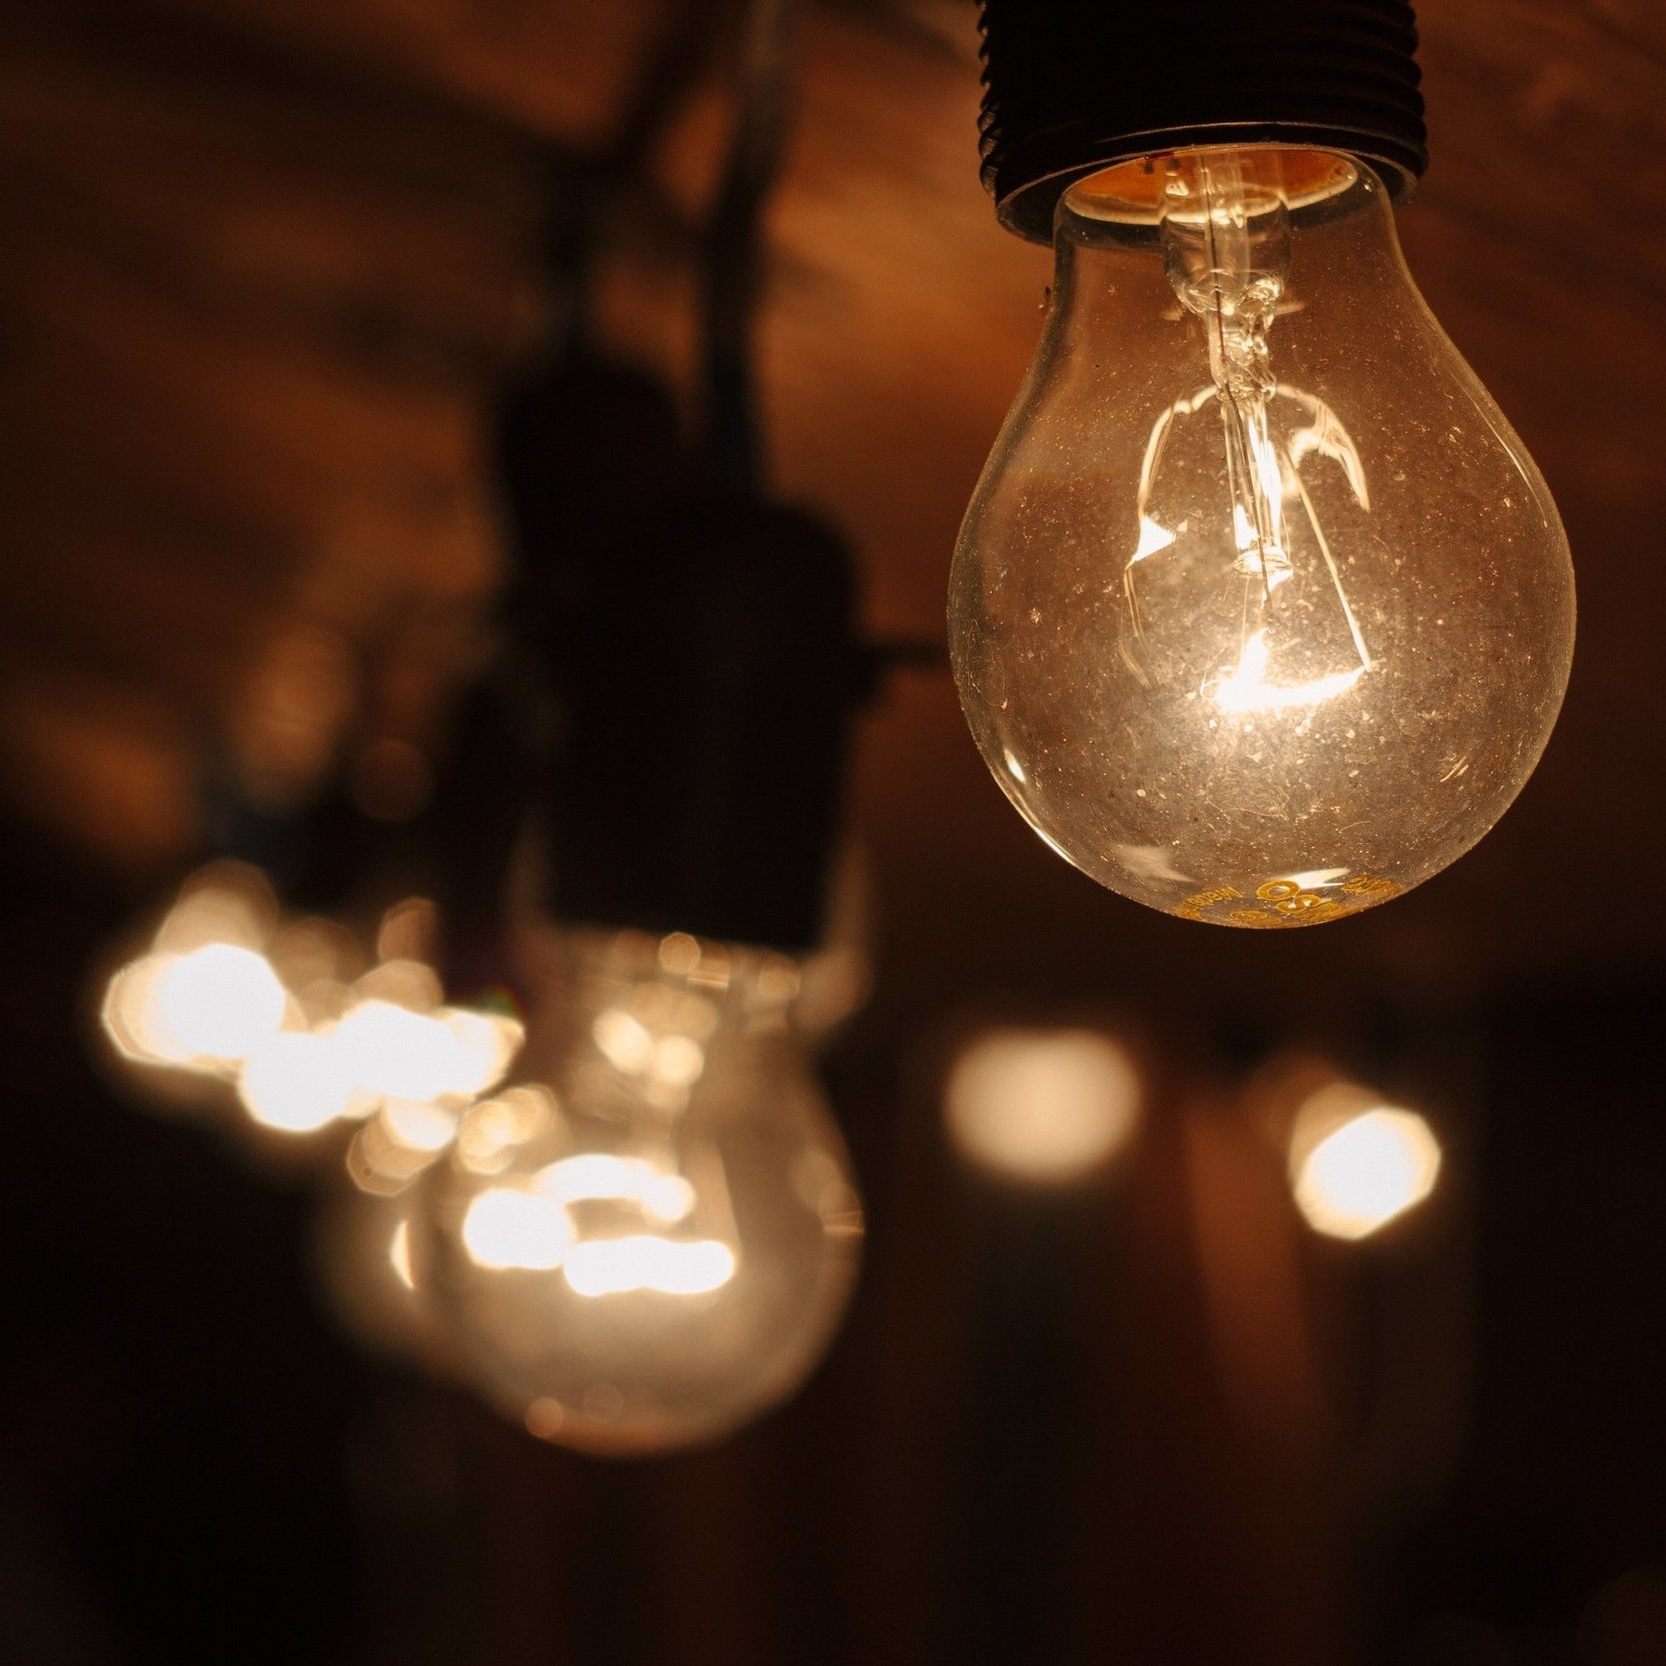 rsz_blur-bright-bulbs-131023.jpg